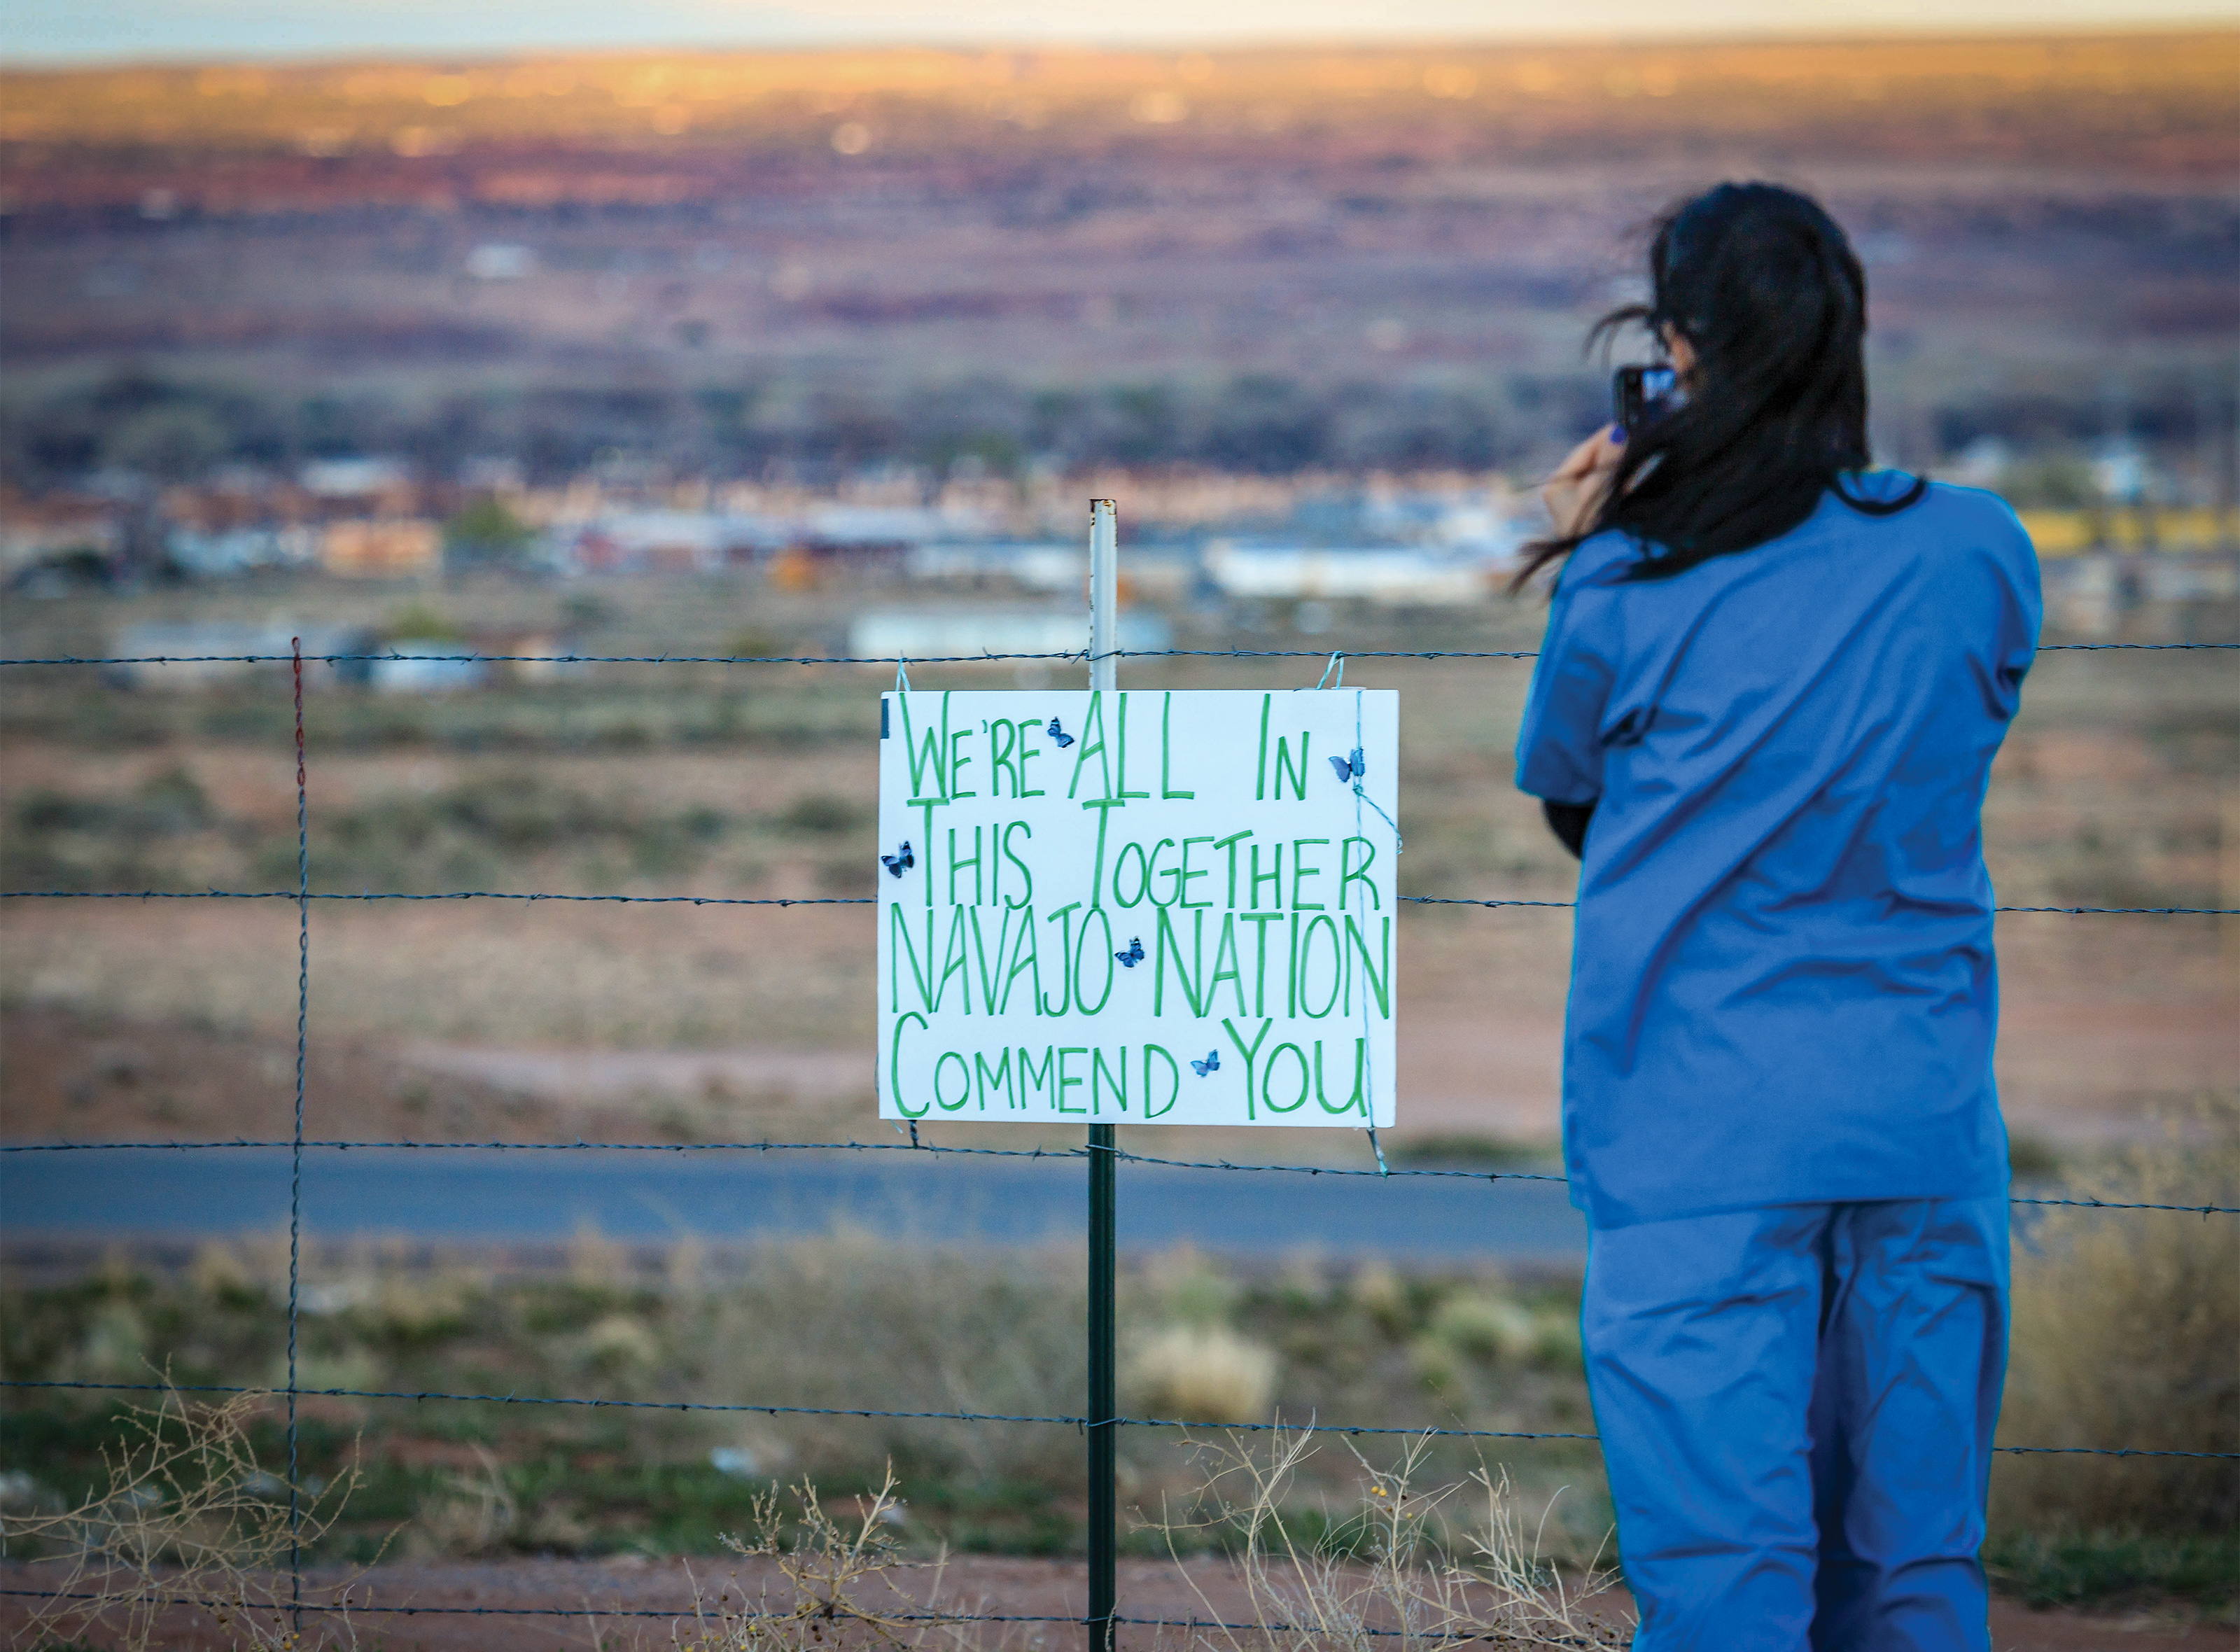 A nurse practitioner snaps a photo on April 8 in Apache County, Arizona—the middle of the Navajo Nation. Beside her, a handmade sign thanks local hospital staff during the pandemic.